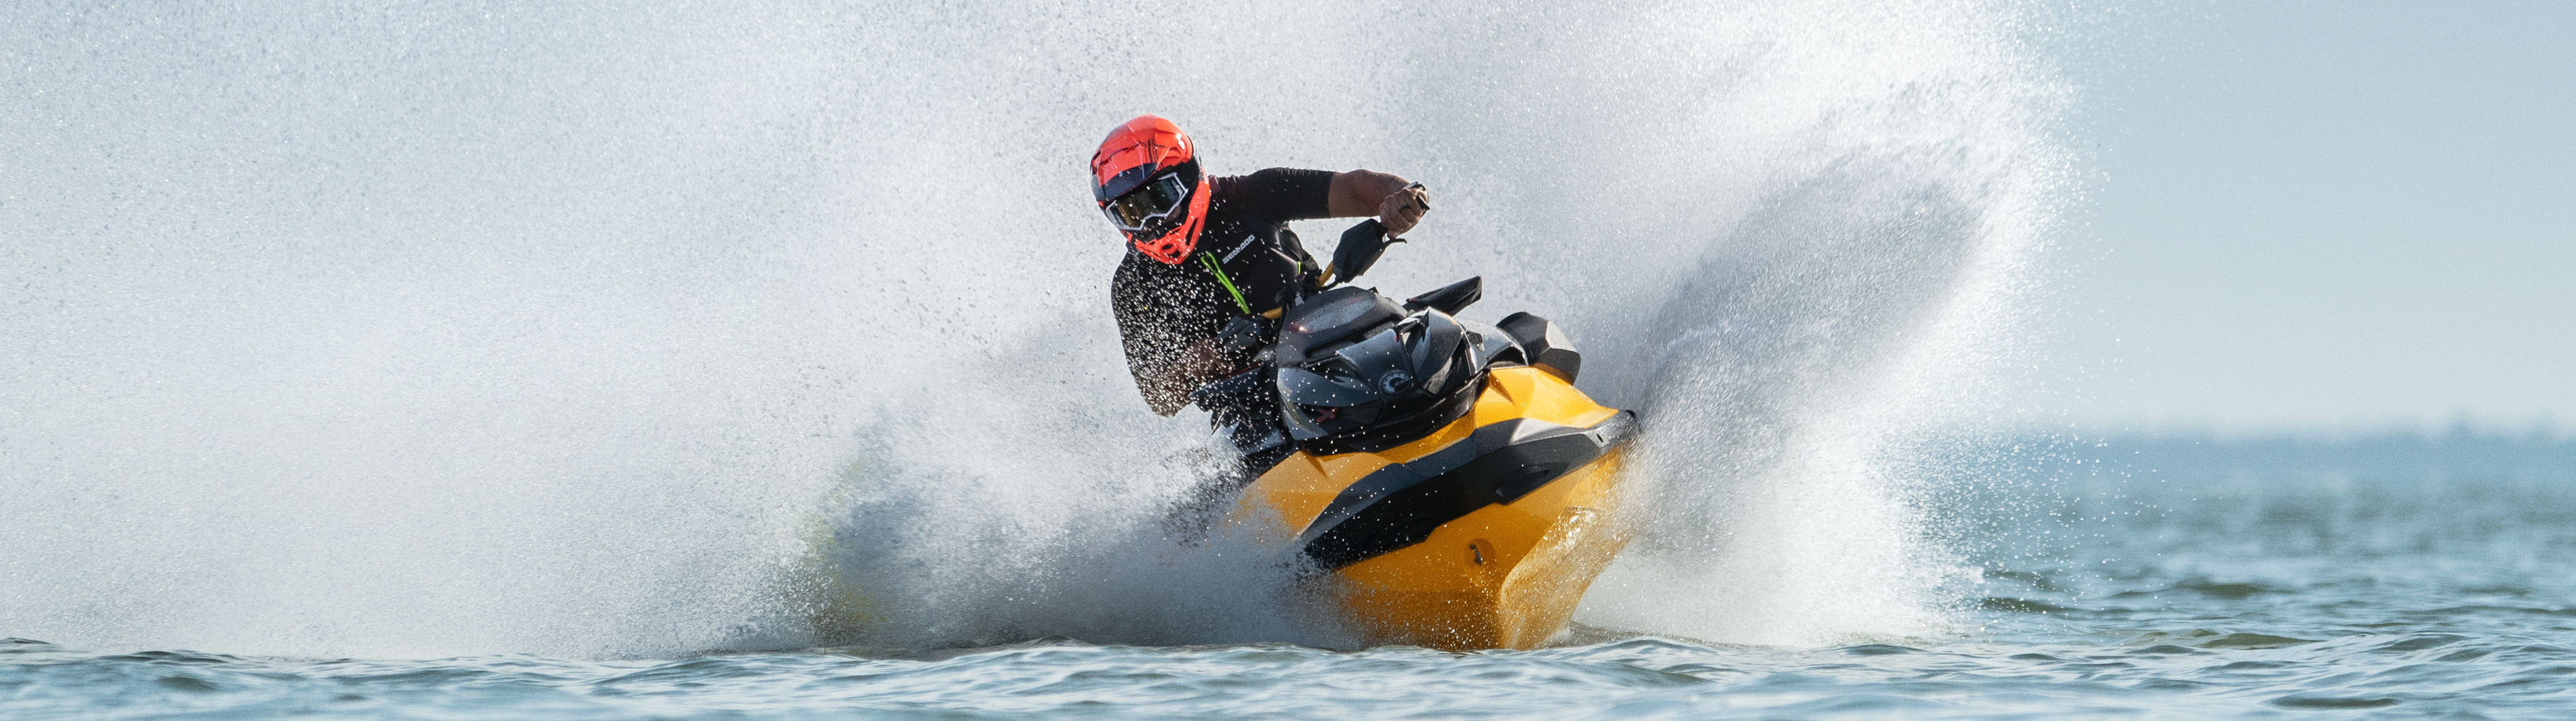 Men riding fast on his Sea-Doo RXP-X